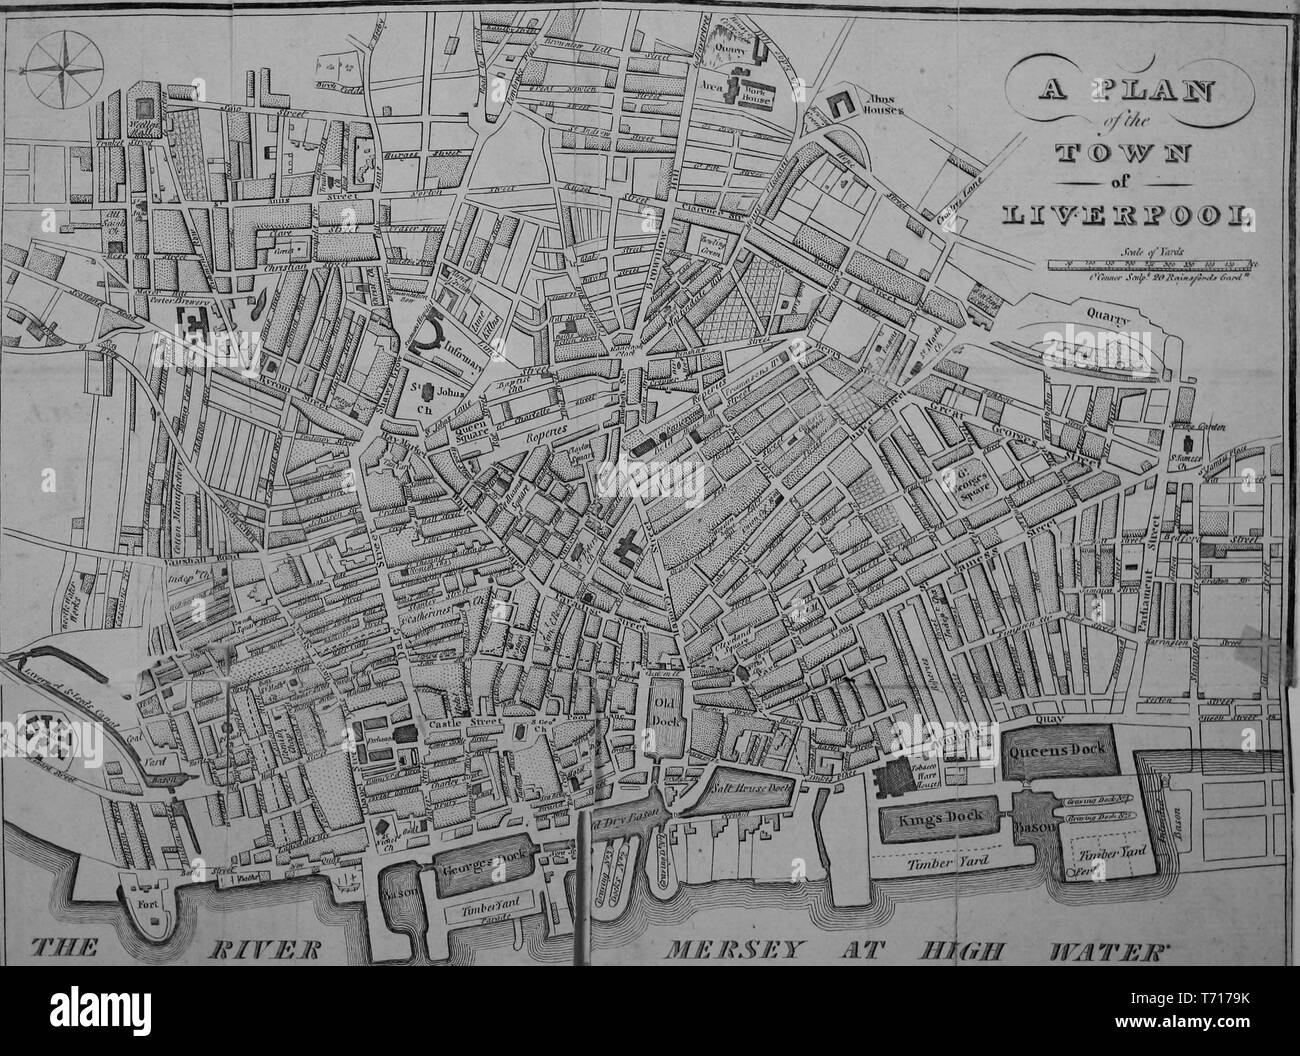 Engraved map of Town of Liverpool, England, from the book 'The picture of Liverpool' by Jones and Wright, 1808. Courtesy Internet Archive. () - Stock Image